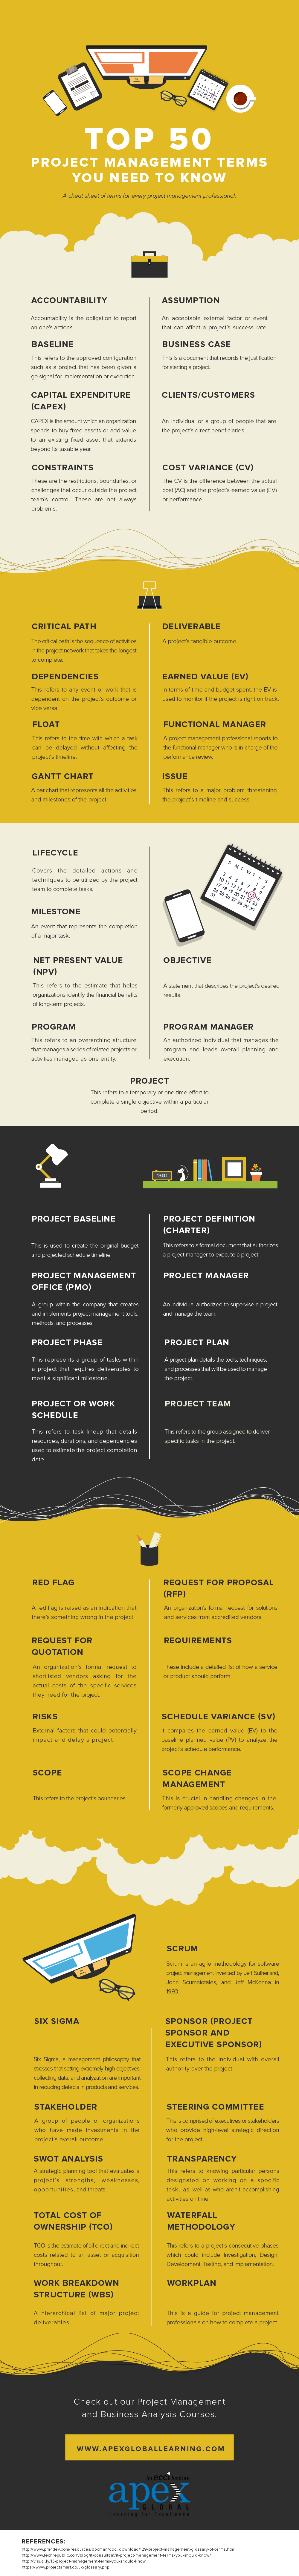 Top 50 most commonly used terms in Project Management